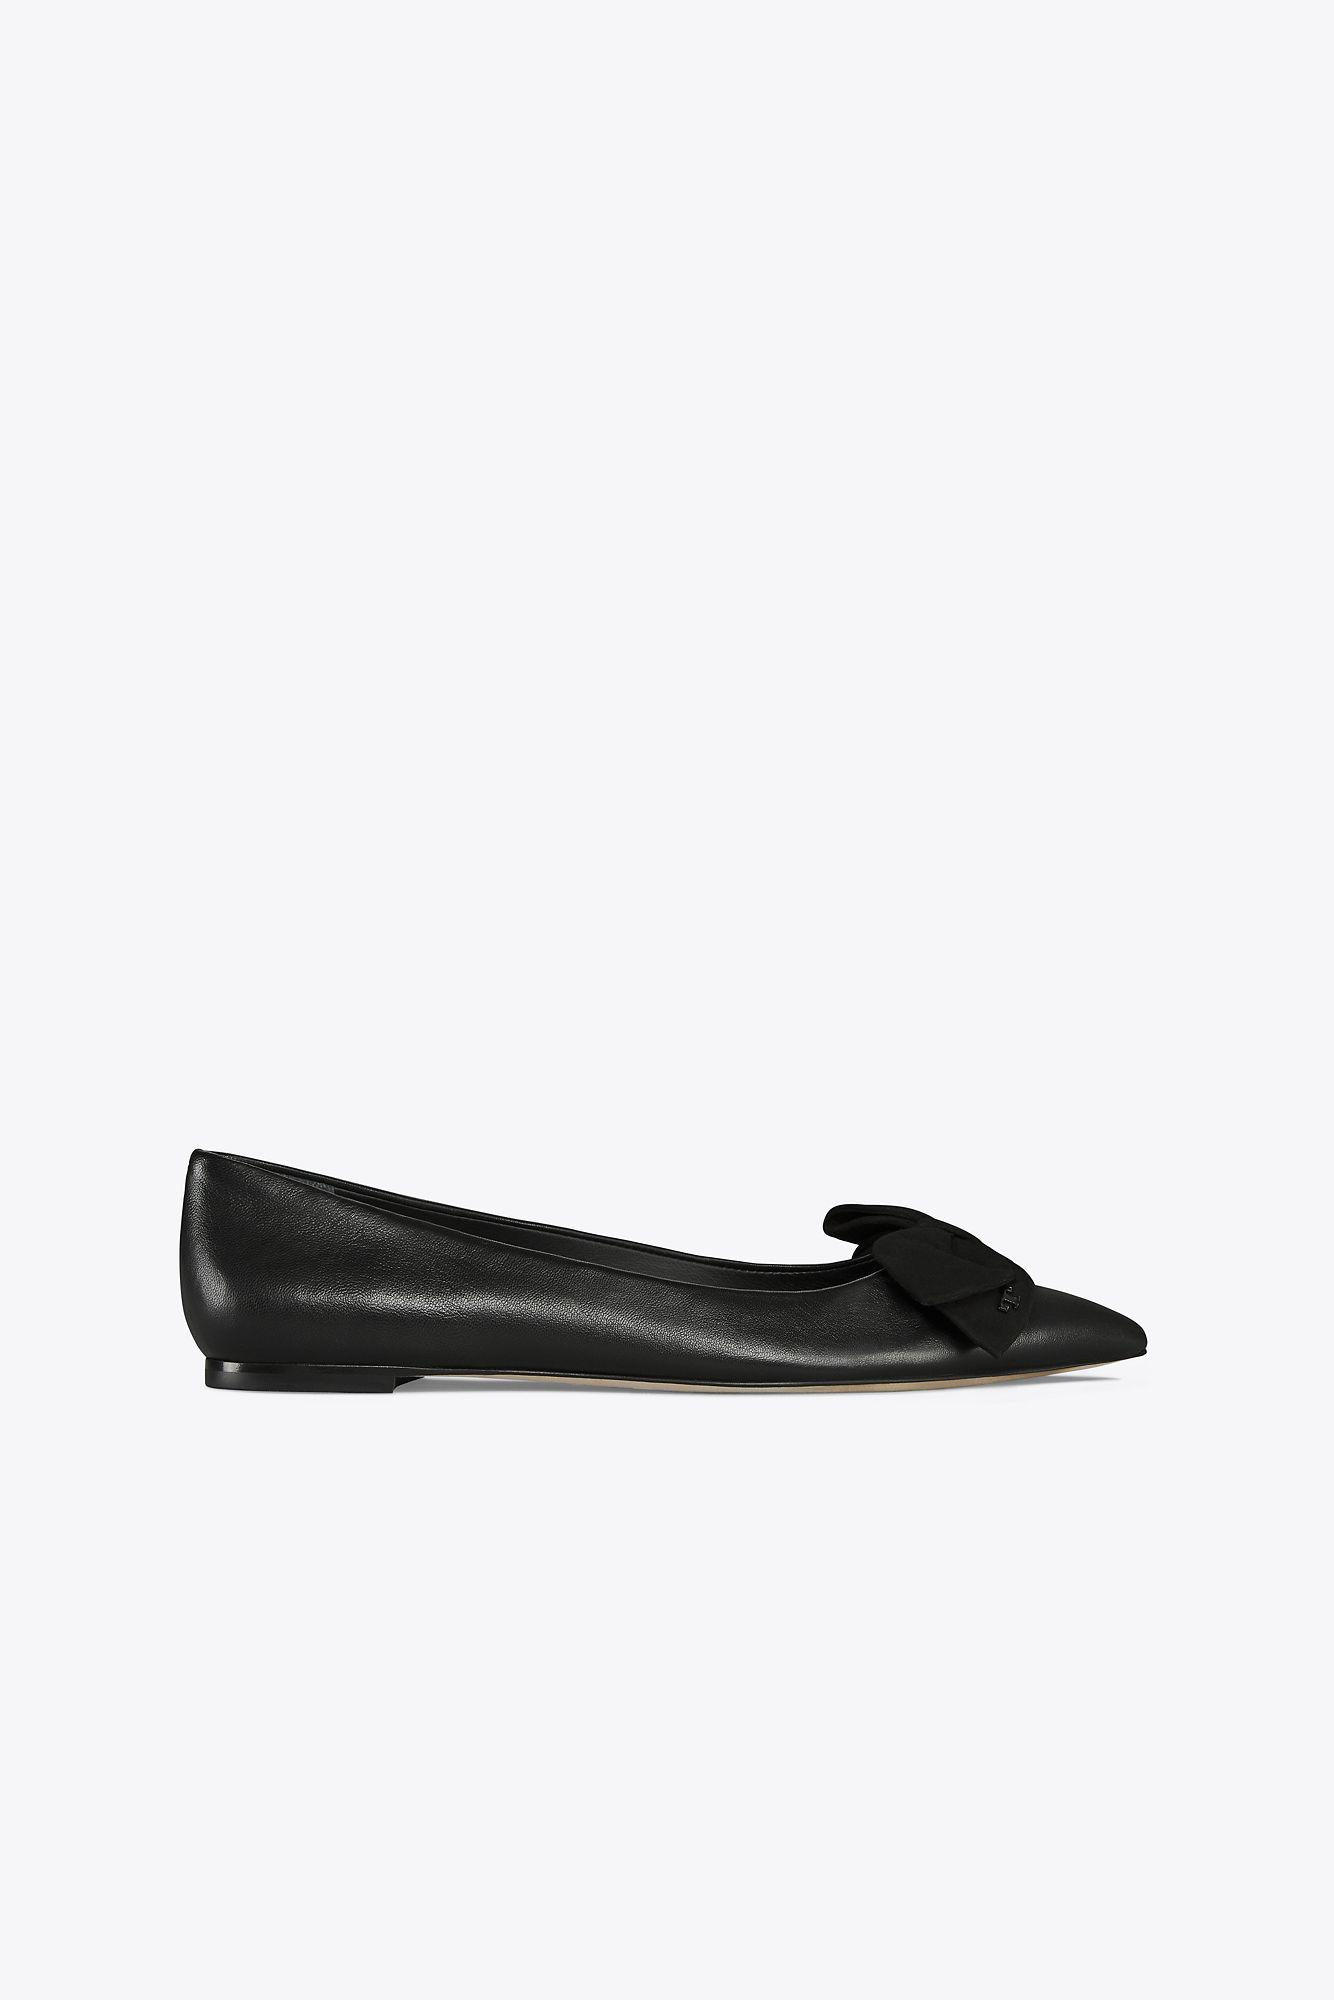 71ab24a6fc56 Tory Burch Rosalind Ballet Flat in Black - Save 46.53061224489796 ...